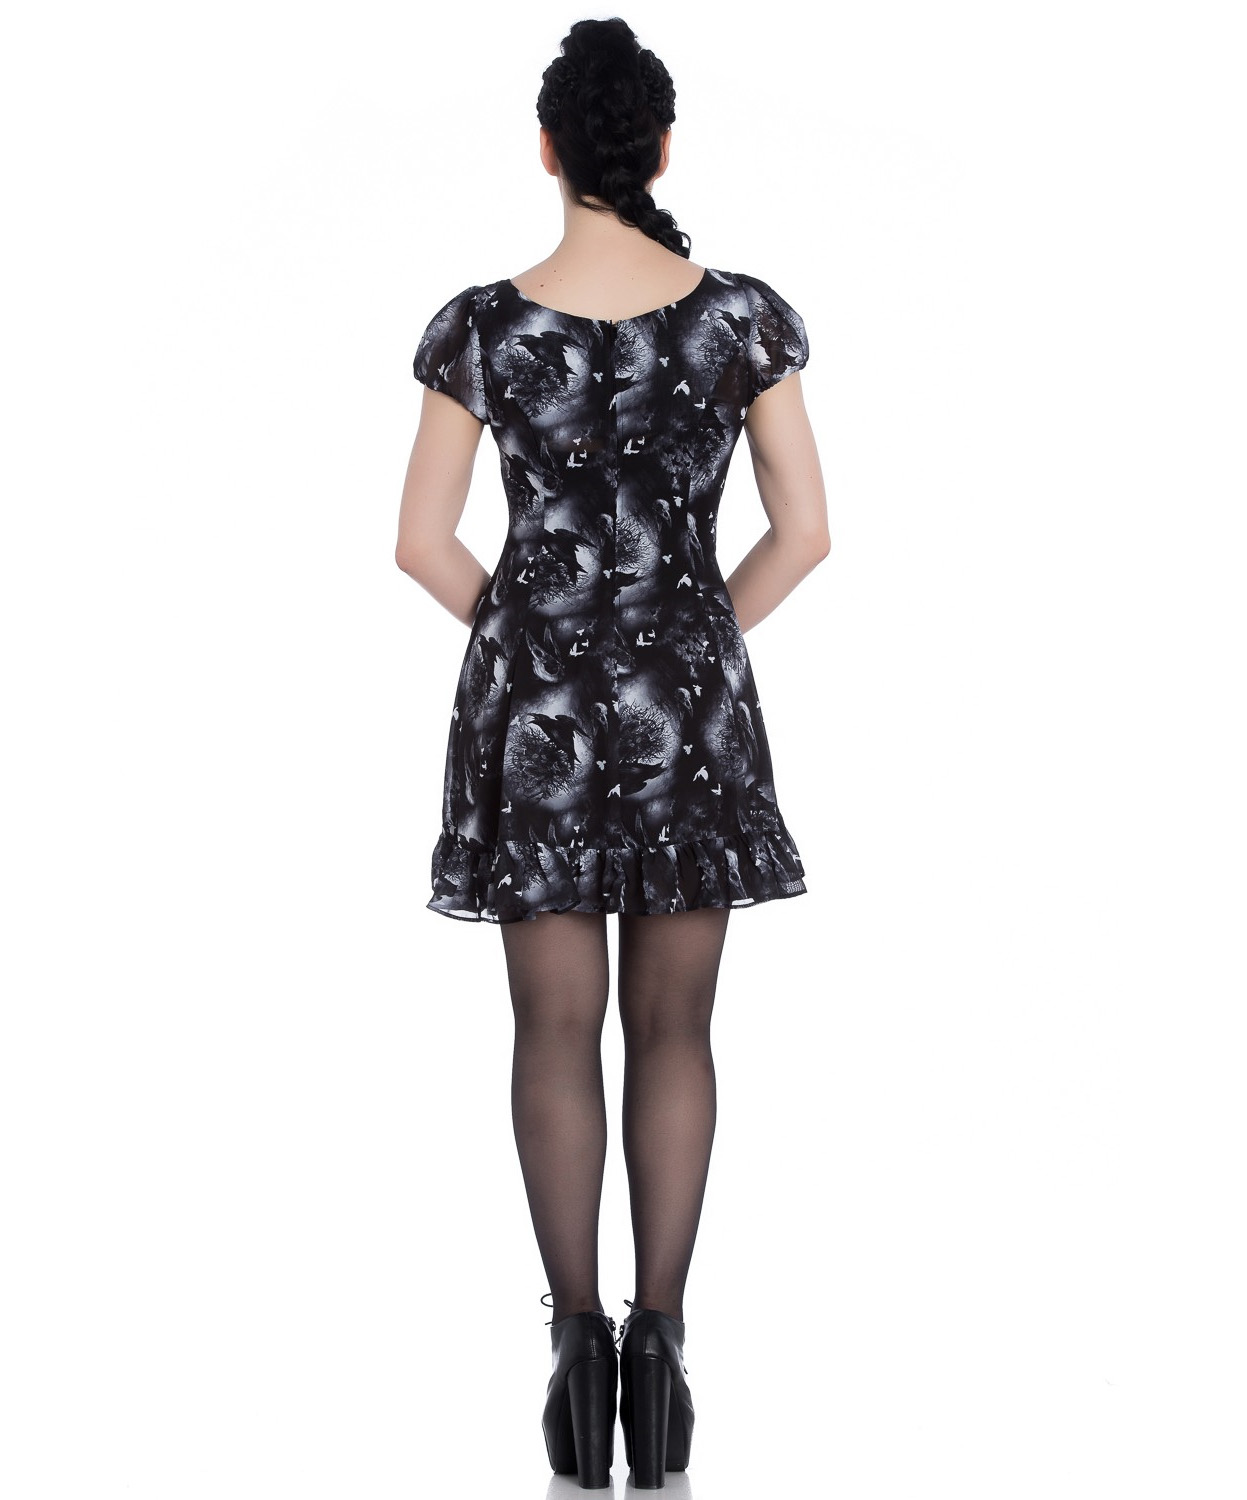 Hell-Bunny-Alchemy-Gothic-Black-Skater-Mini-Dress-ASH-Crows-Skulls-All-Sizes thumbnail 33